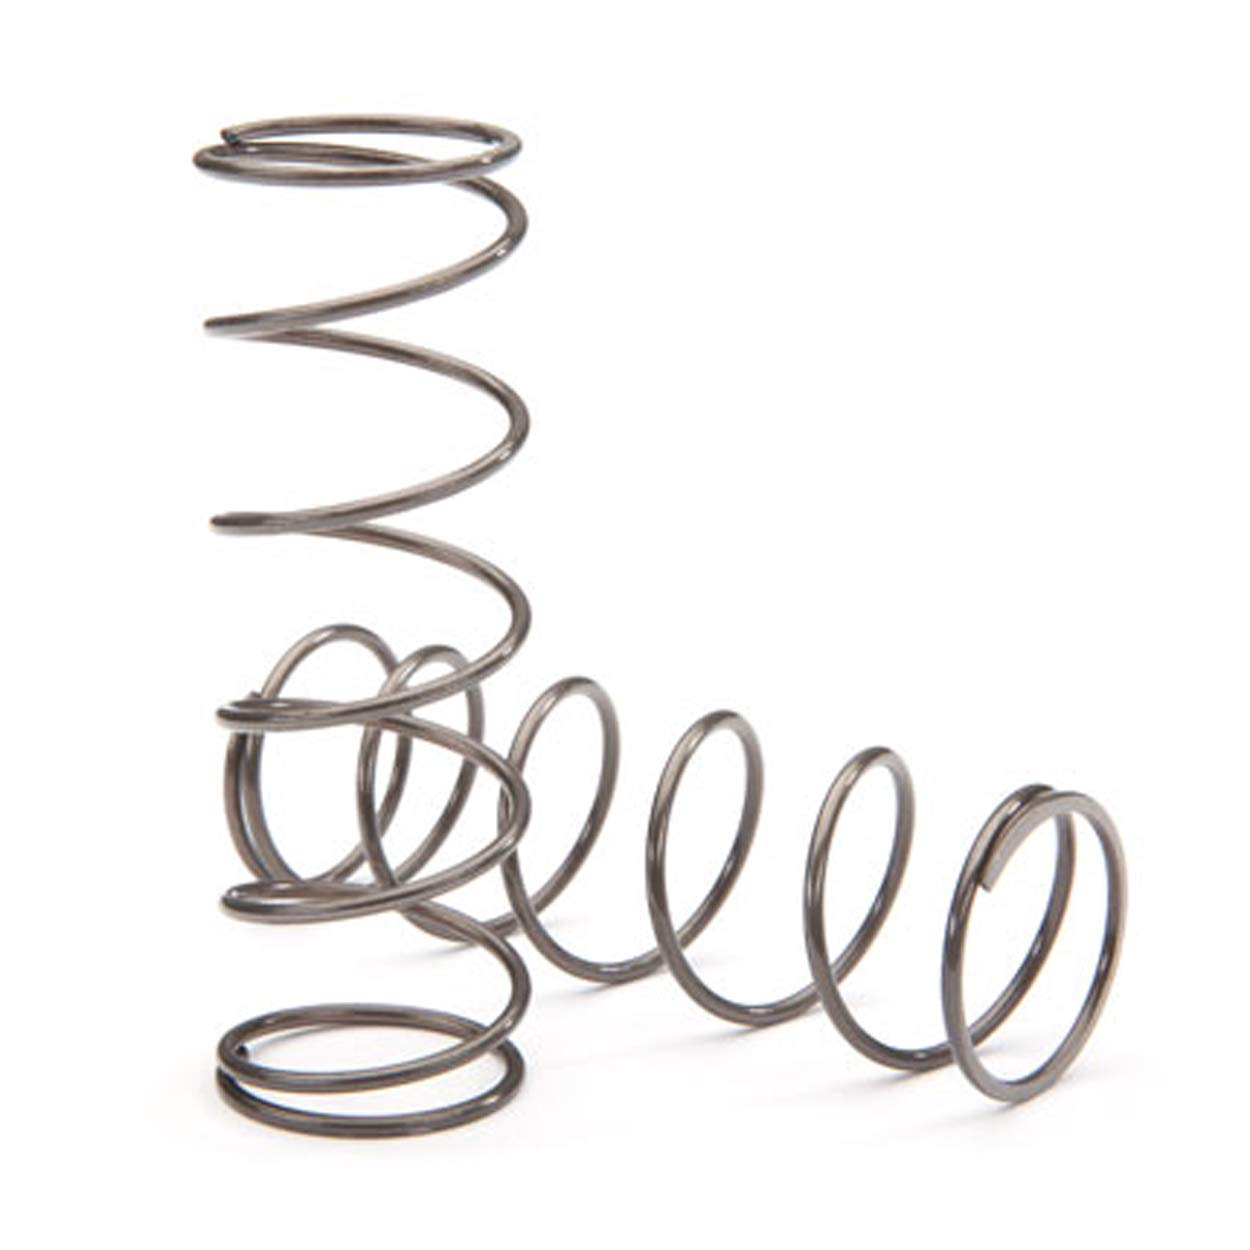 Natural Finish 2 Shock 1.450 Rate GT-Maxx Traxxas 8967 Springs